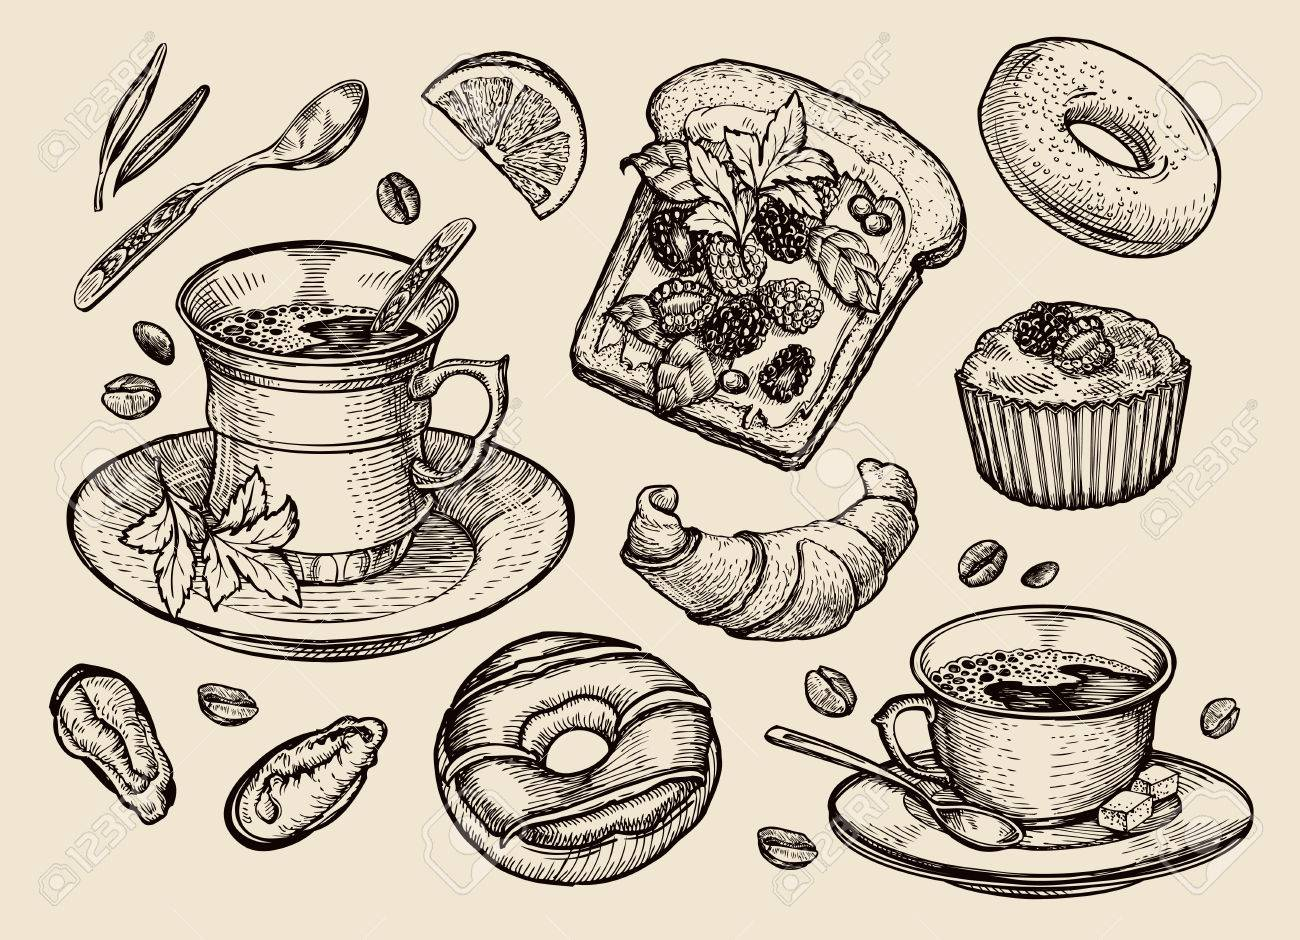 food vector sketch sandwich dessert coffee cup tea royalty free cliparts vectors and stock illustration image 55349061 food vector sketch sandwich dessert coffee cup tea